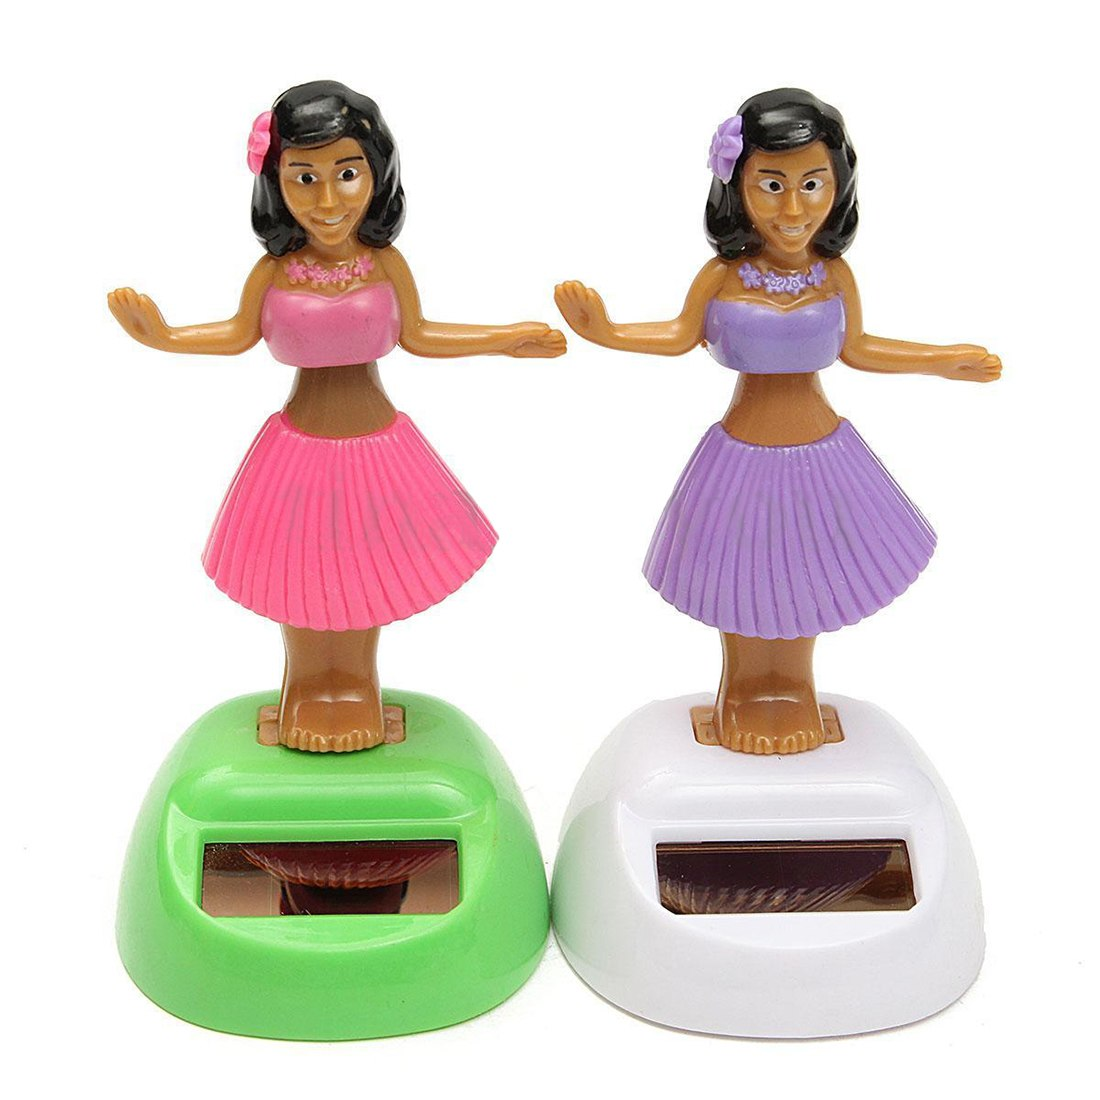 Costbuys  4x Solar Powered Dancing Hula Girl Swinging Bobble Toy Gift For Car Decoration